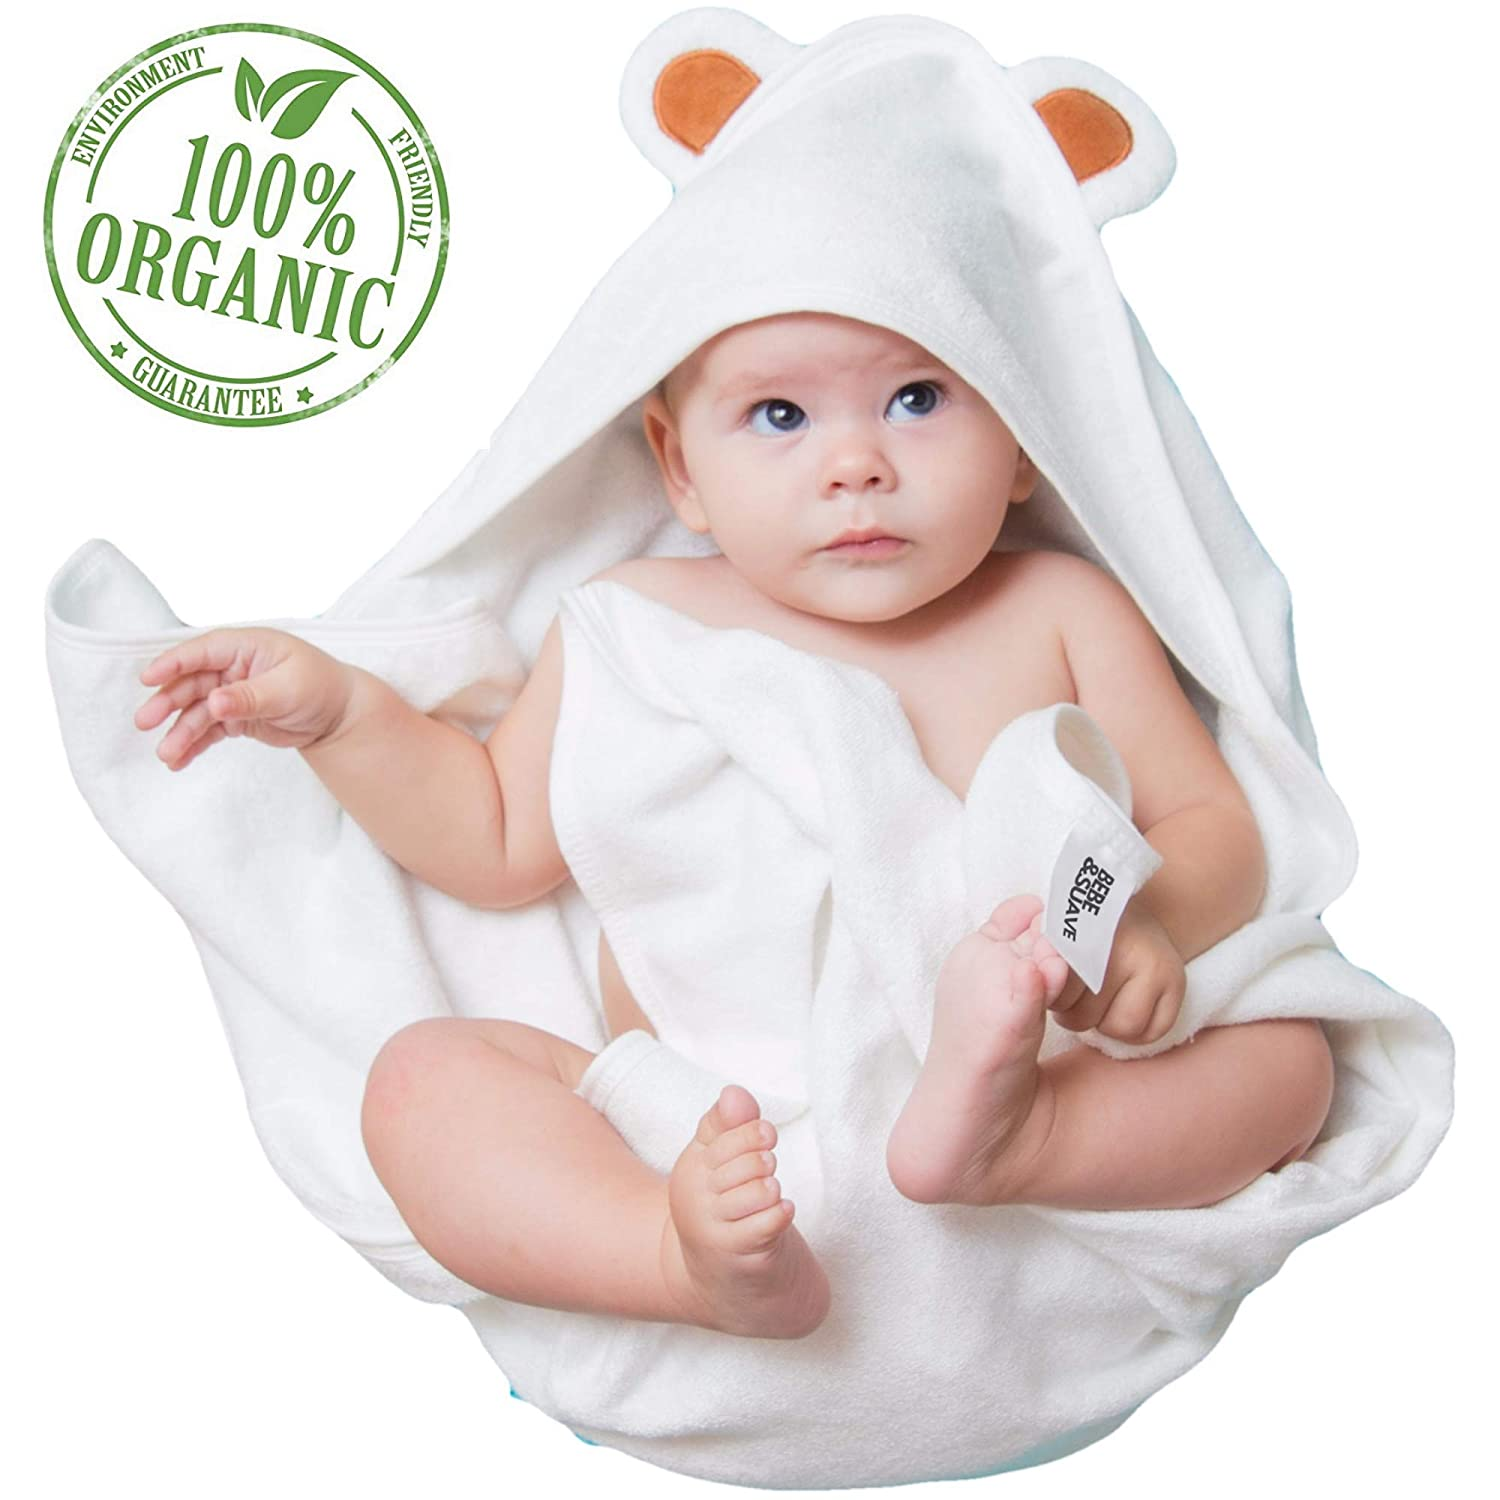 Premium Ultra Soft Organic Bamboo Baby Hooded Bath Towel with Bear Ears - Baby Shower Gift | For Boys and Girls Newborn Infant Toddler- Extra Absorbent and Hypoallergenic for Sensitive Skin - Large J & J